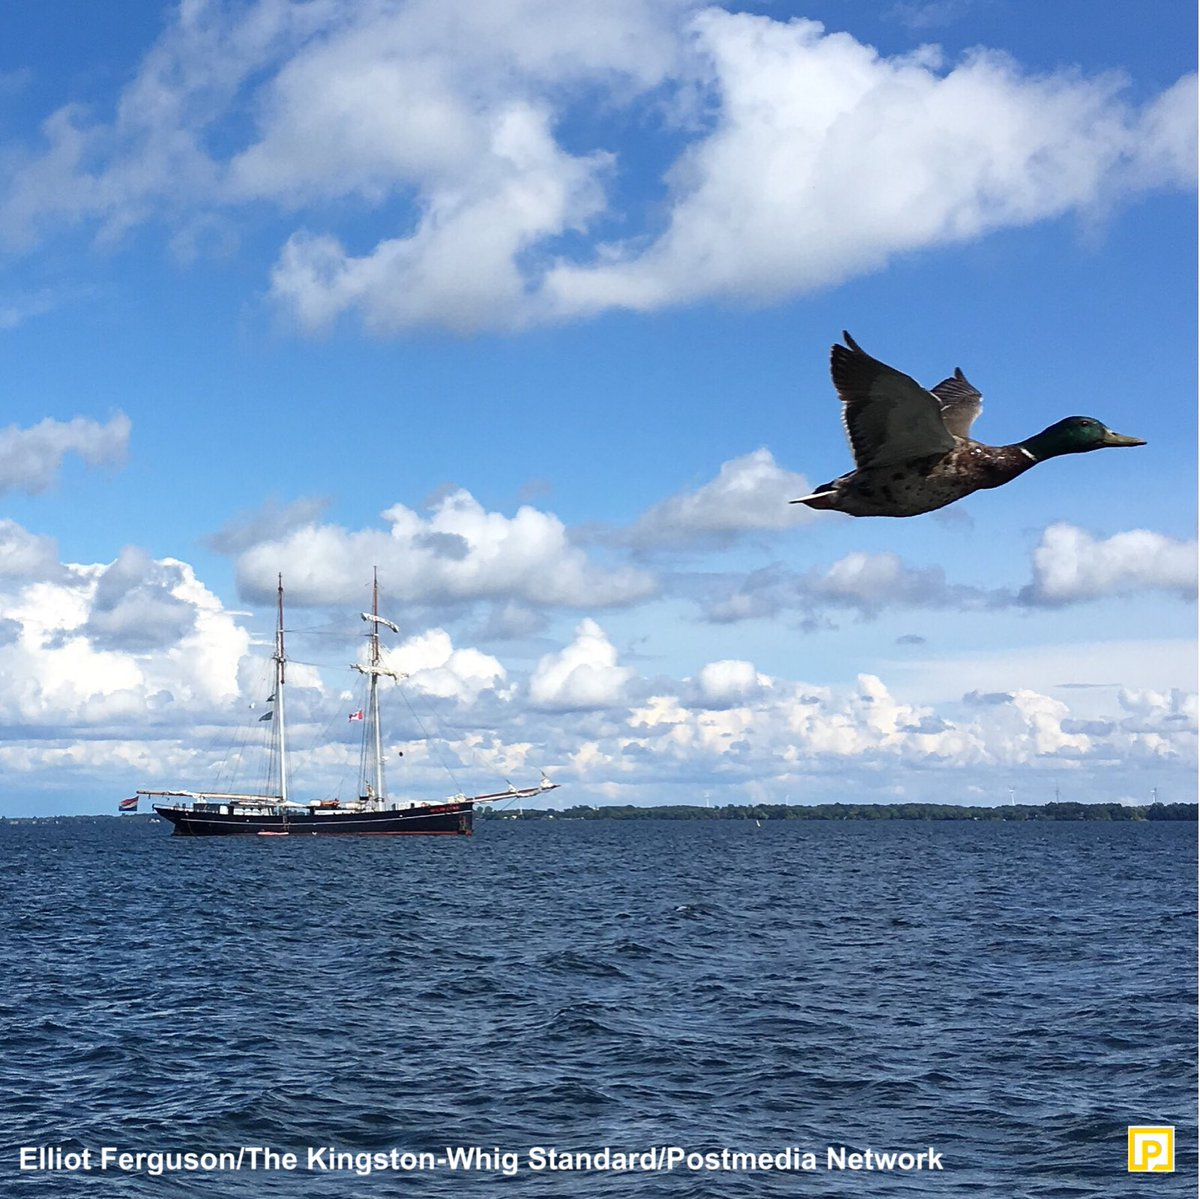 The @WyldeSwan, a 97-year-old Dutch sailing ship, sits at anchor off #ygk. The ship is on a regatta from Bermuda to Hamilton. <br>http://pic.twitter.com/UGgmK5PpVR